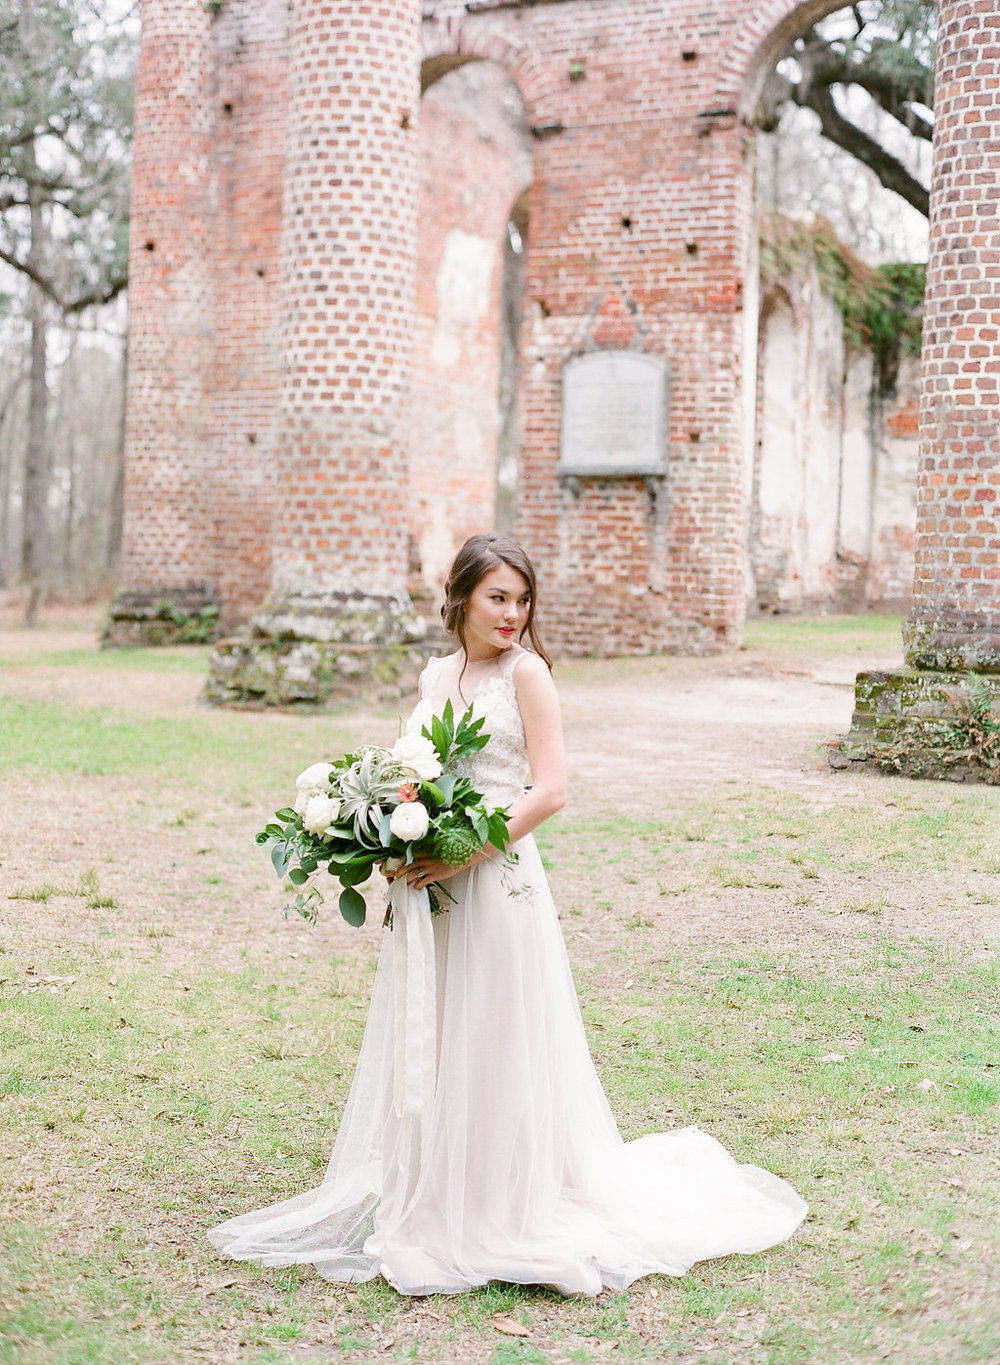 the-happy-bloom-photography-ti-adora-7553-ivory-and-beau-bridal-boutique-savannah-wedding-dresses-old-sheldon-ruins-savannah-wedding-planner-savannah-event-designer-savannah-weddings-savannah-film-photographer-savannah-photography-workshop-17.jpg